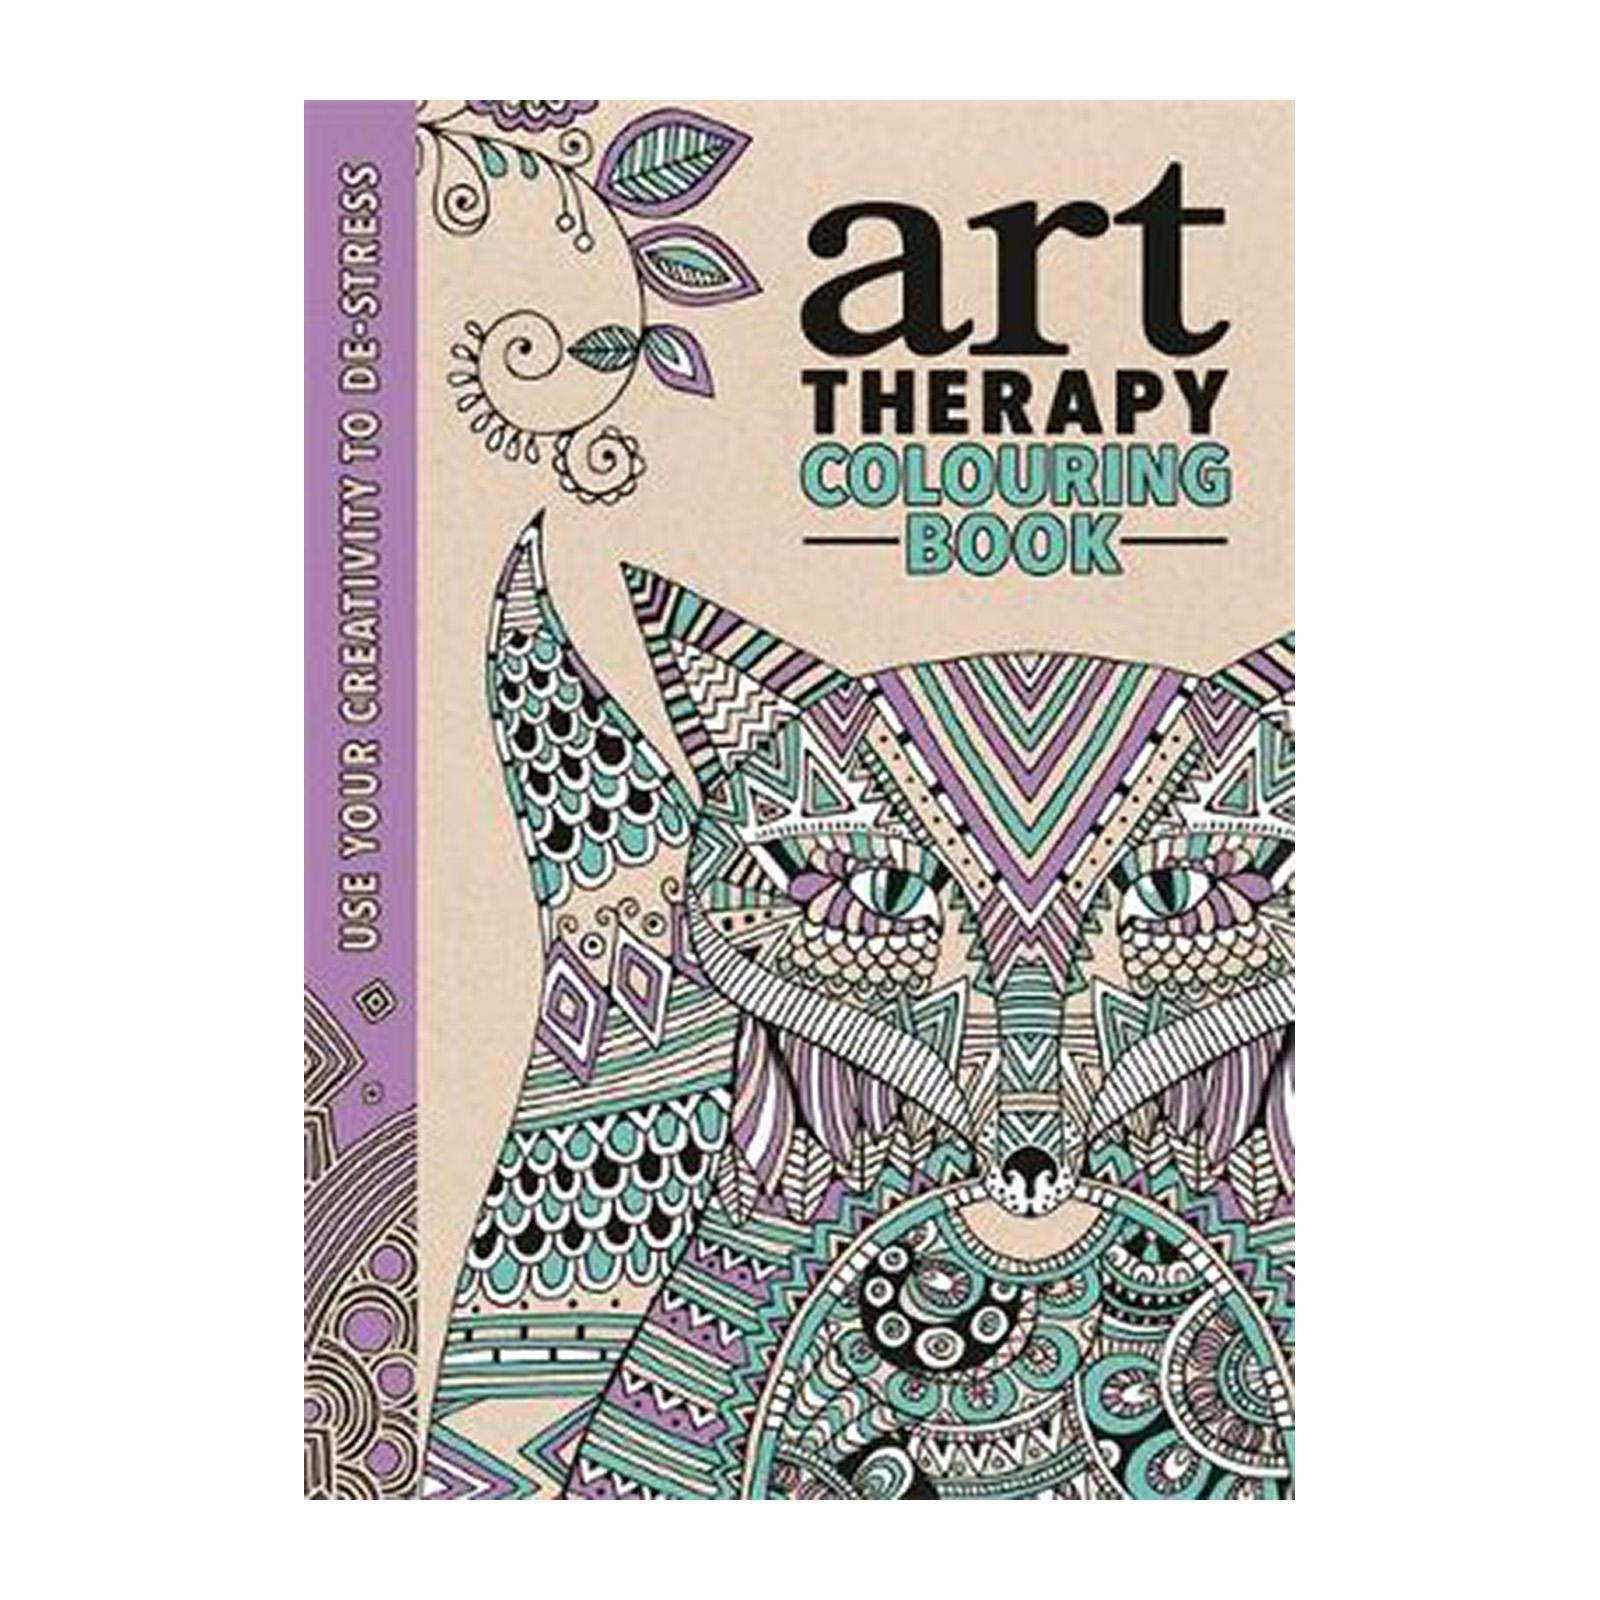 The Art Therapy Coloring Book (Hardcover)